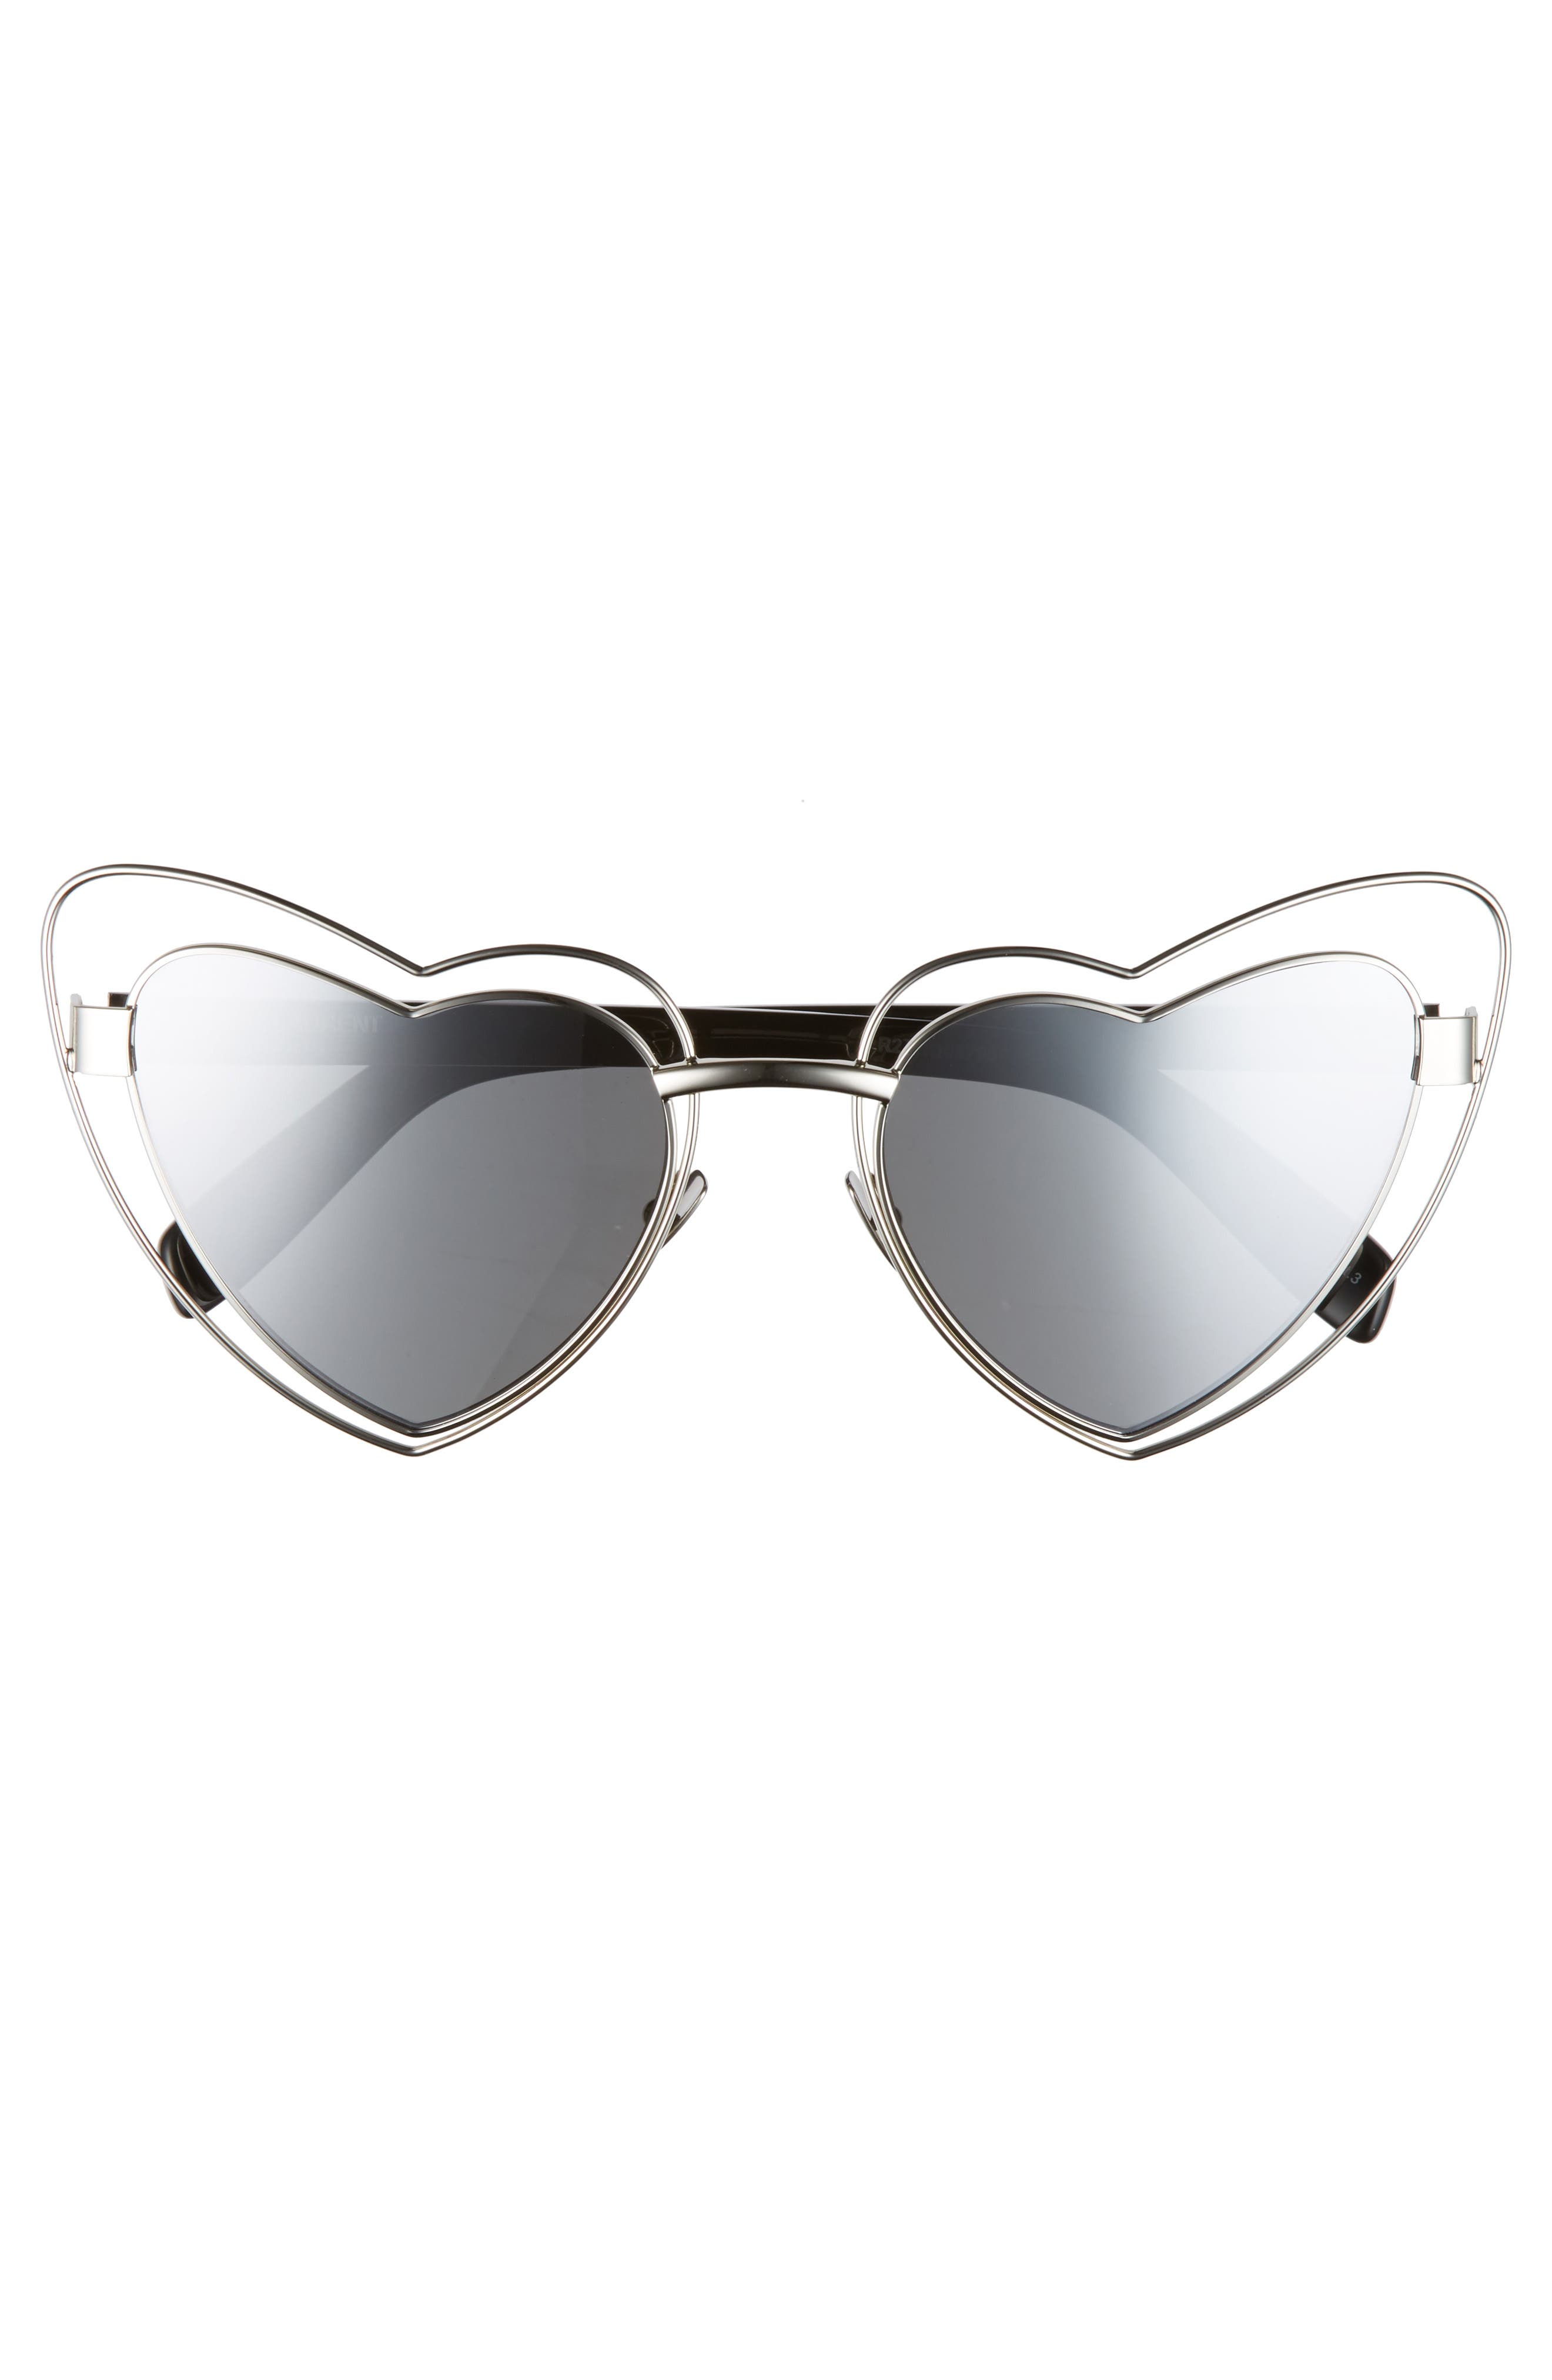 SL197 Loulou 57mm Heart Shaped Sunglasses,                             Alternate thumbnail 3, color,                             Silver